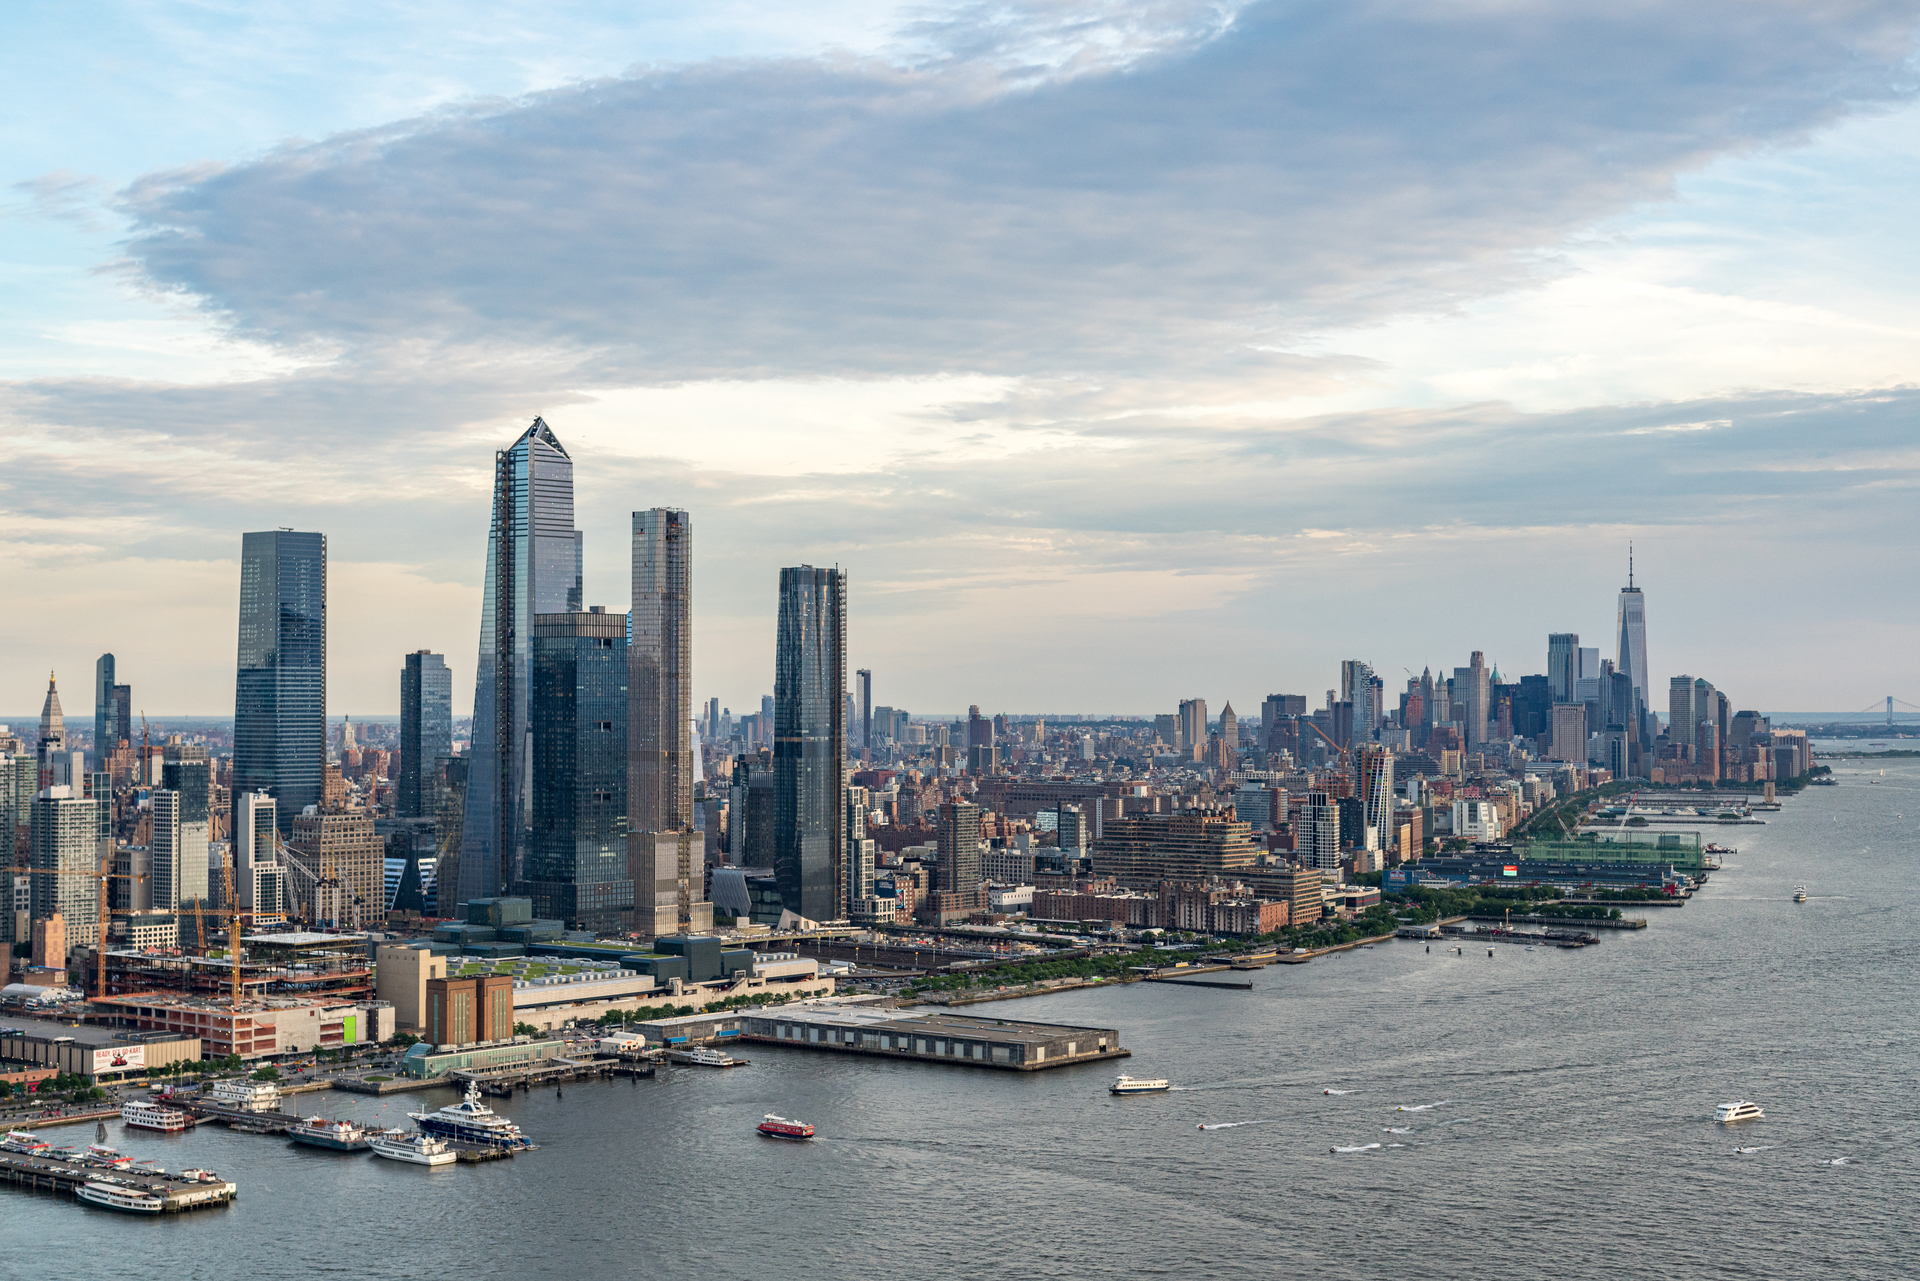 Skyline views of the private development at Hudson Yards that'll be completed in Manhattan's Far West Side.